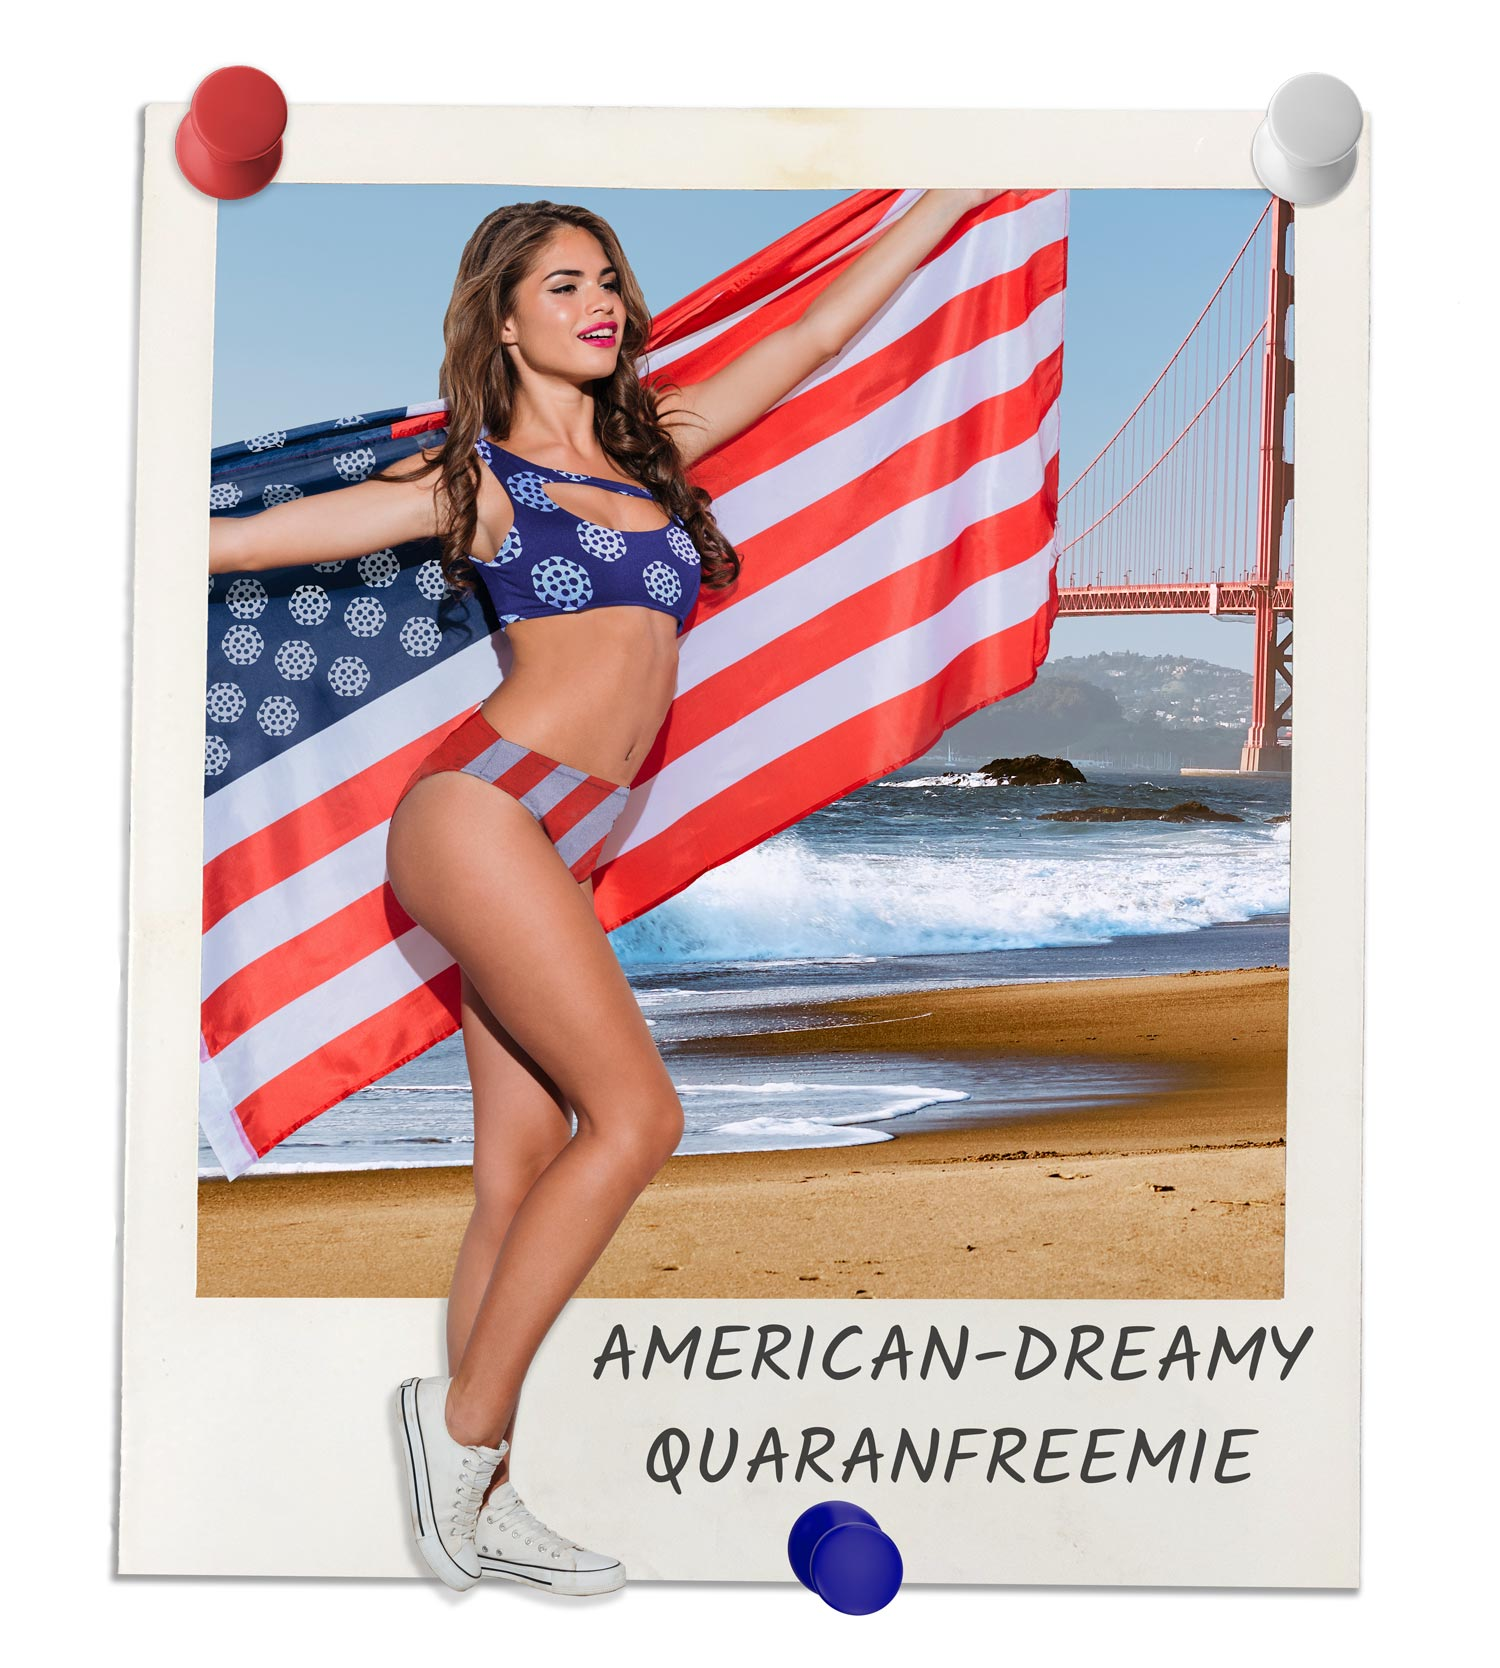 Young woman in America-themed bikini but instead of stars, there are white covid shapes. She is also wearing a PPE mask to go along with the PPE Bikini and Boardshorts theme. Polaroid also shows the title of the suit called the American-Dreamy Quaranfreemie.